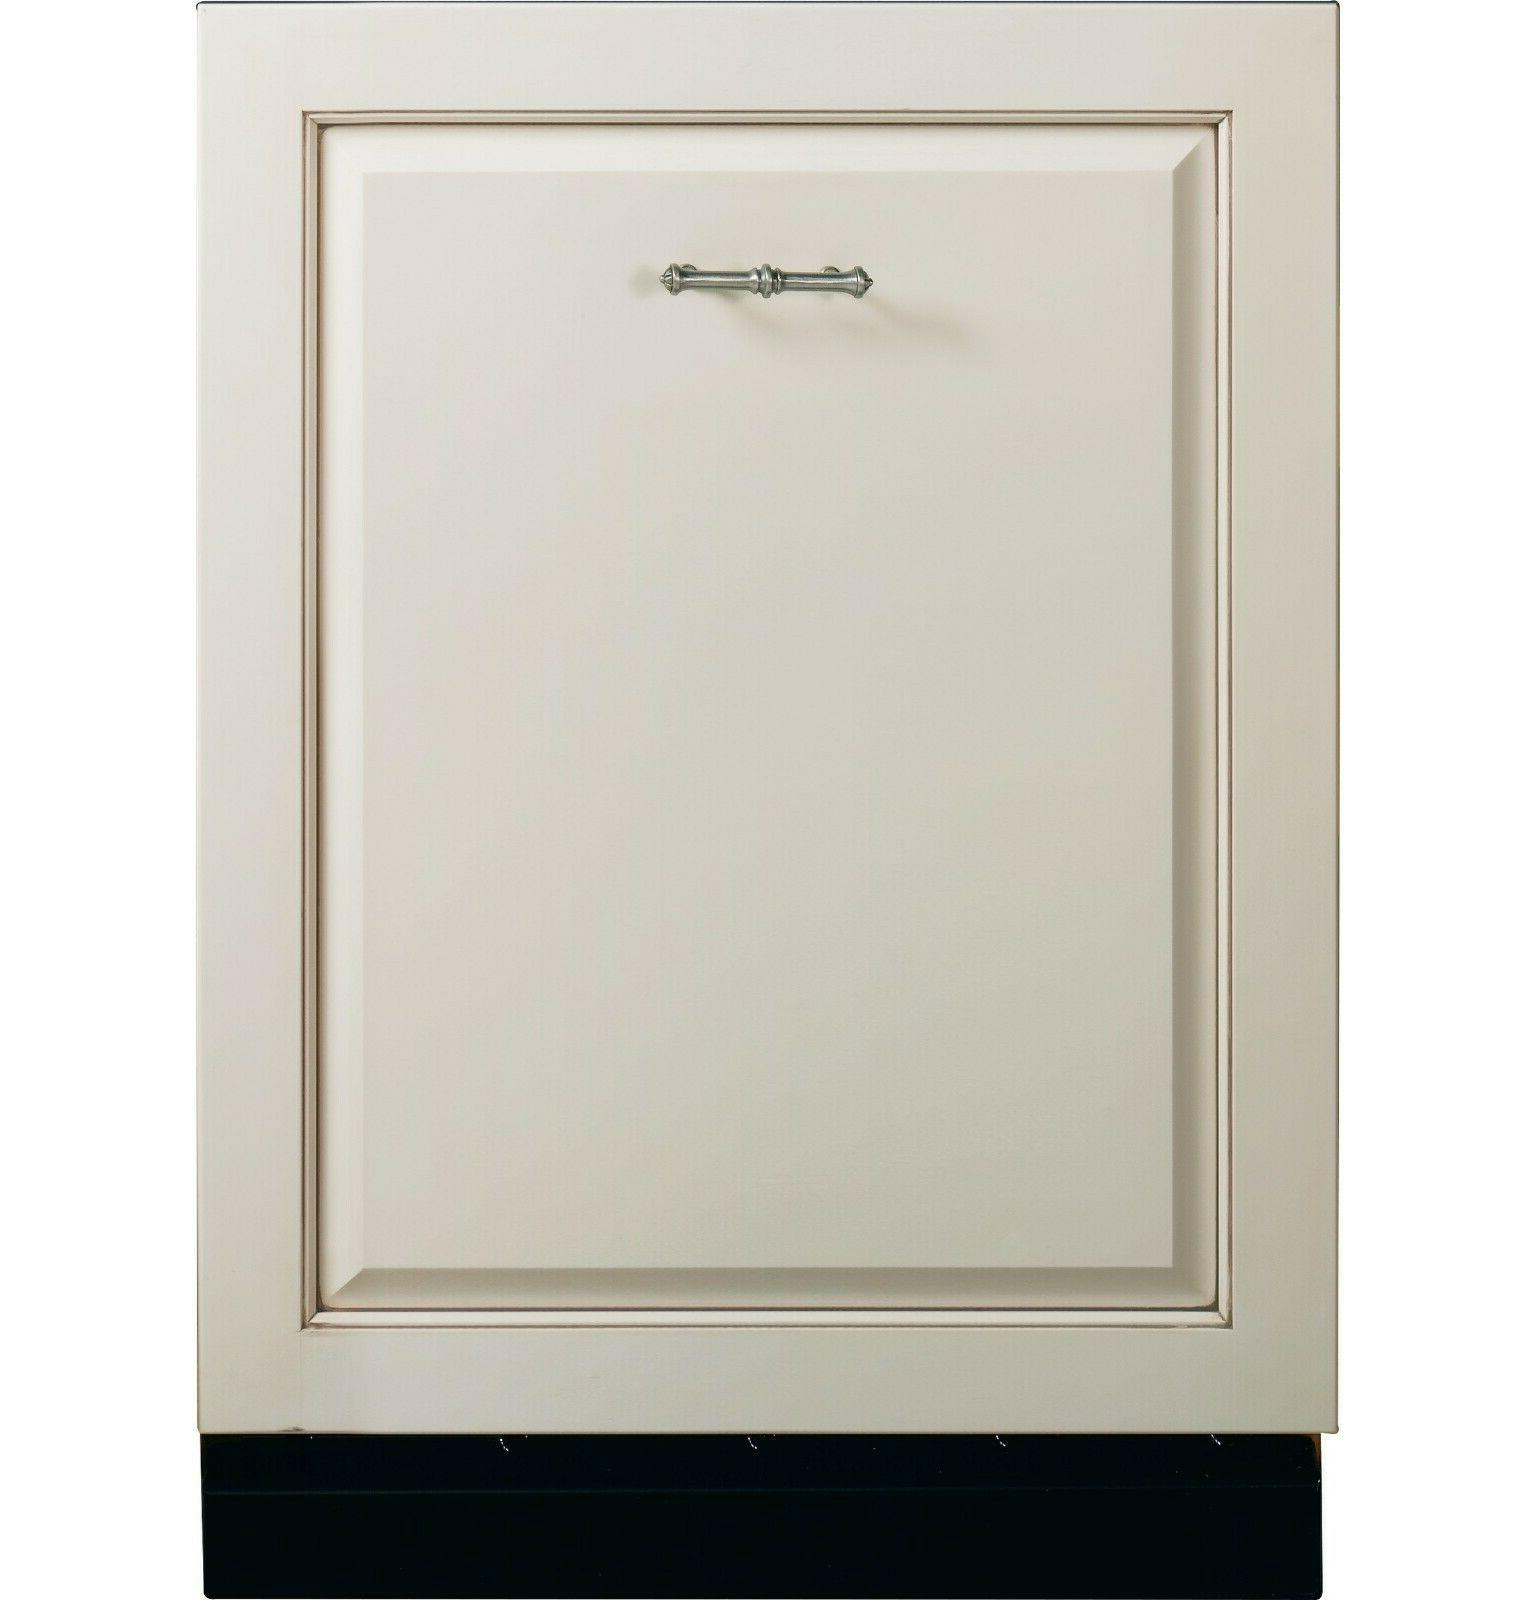 gdt740sifii fully integrated dishwasher panel ready